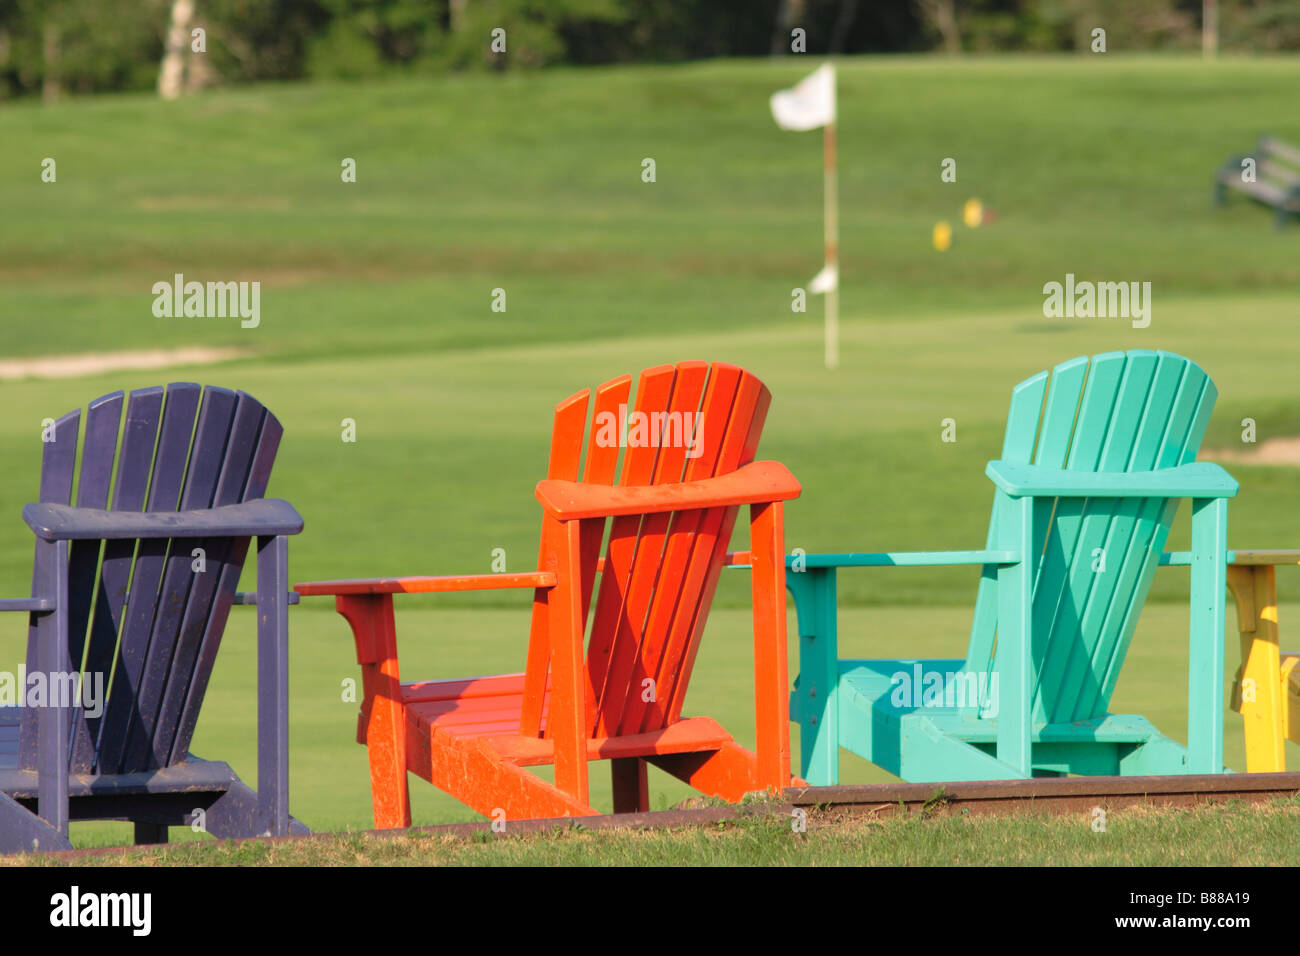 Colorful Wooden Chairs Adirondack Lawn Chairs Stock Photos And Adirondack Lawn